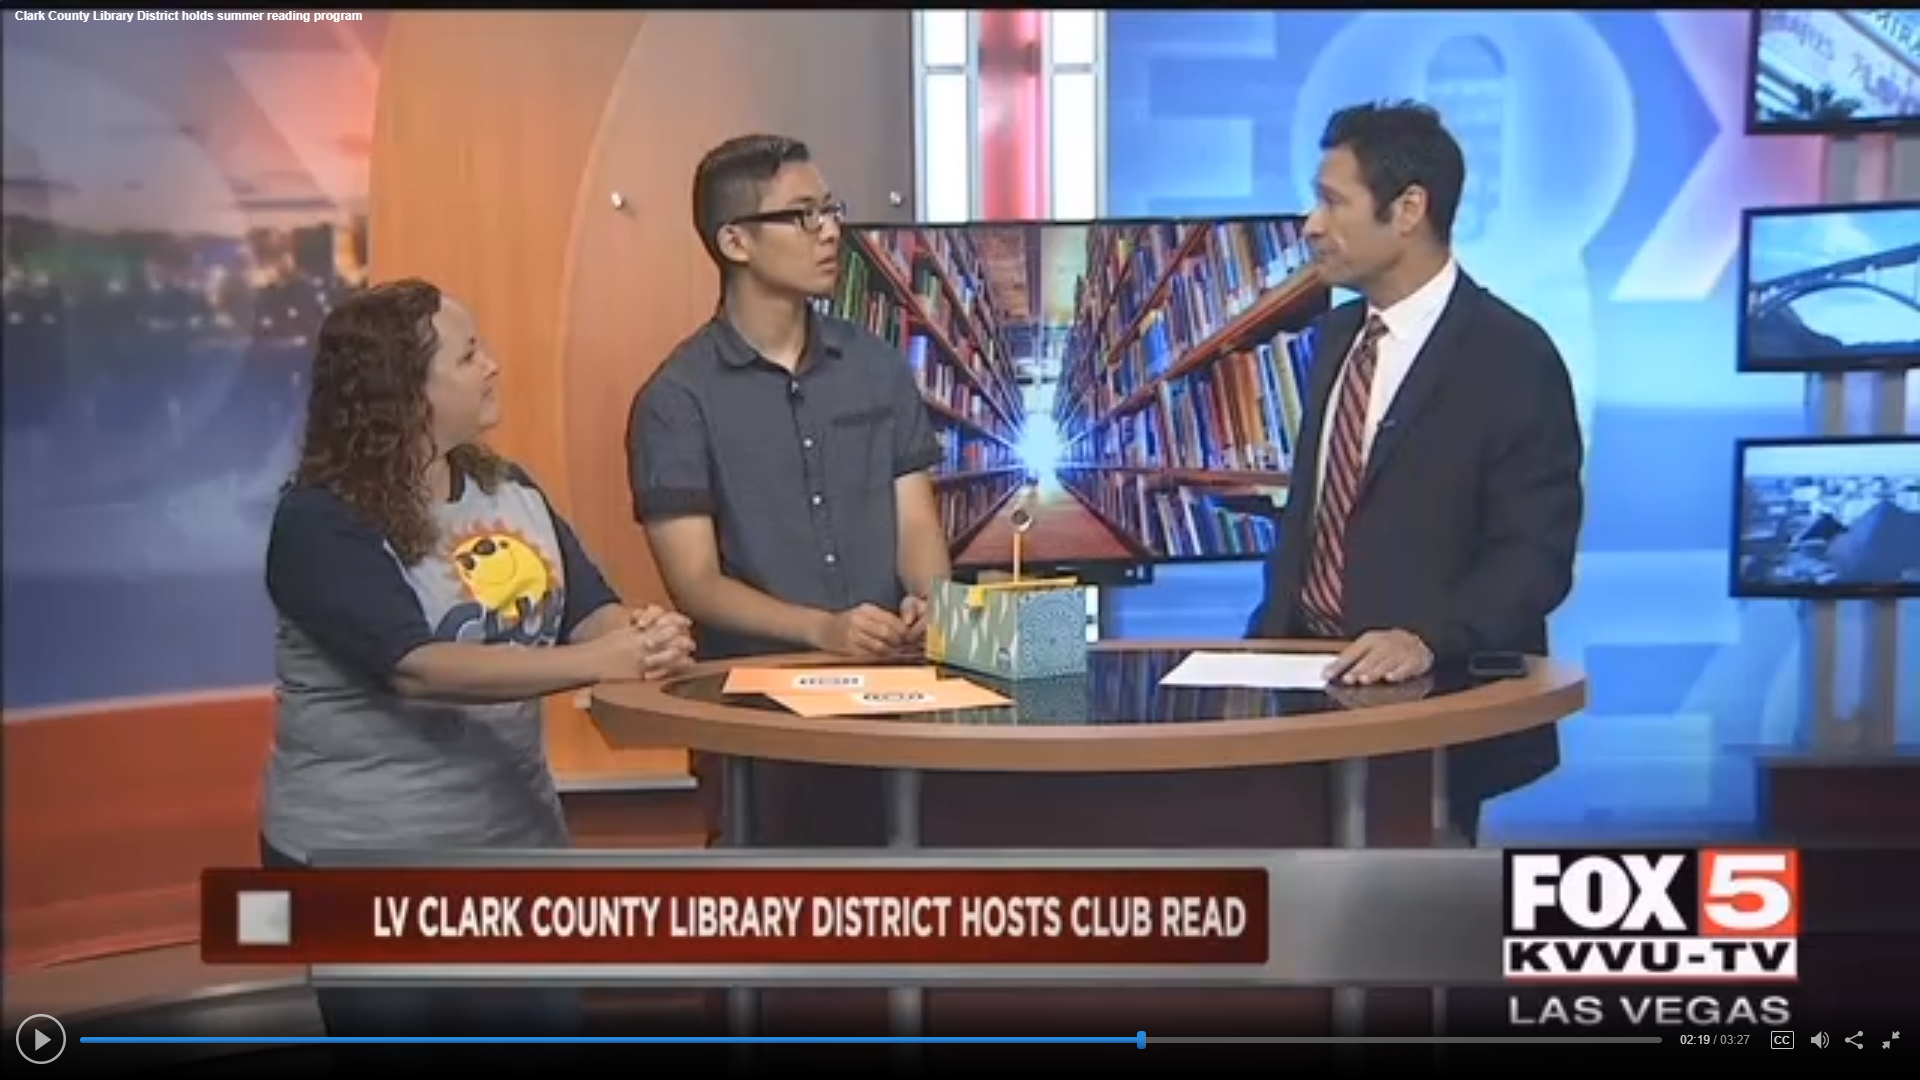 Fox 5 Vegas: Las Vegas-Clark County Library District Holds